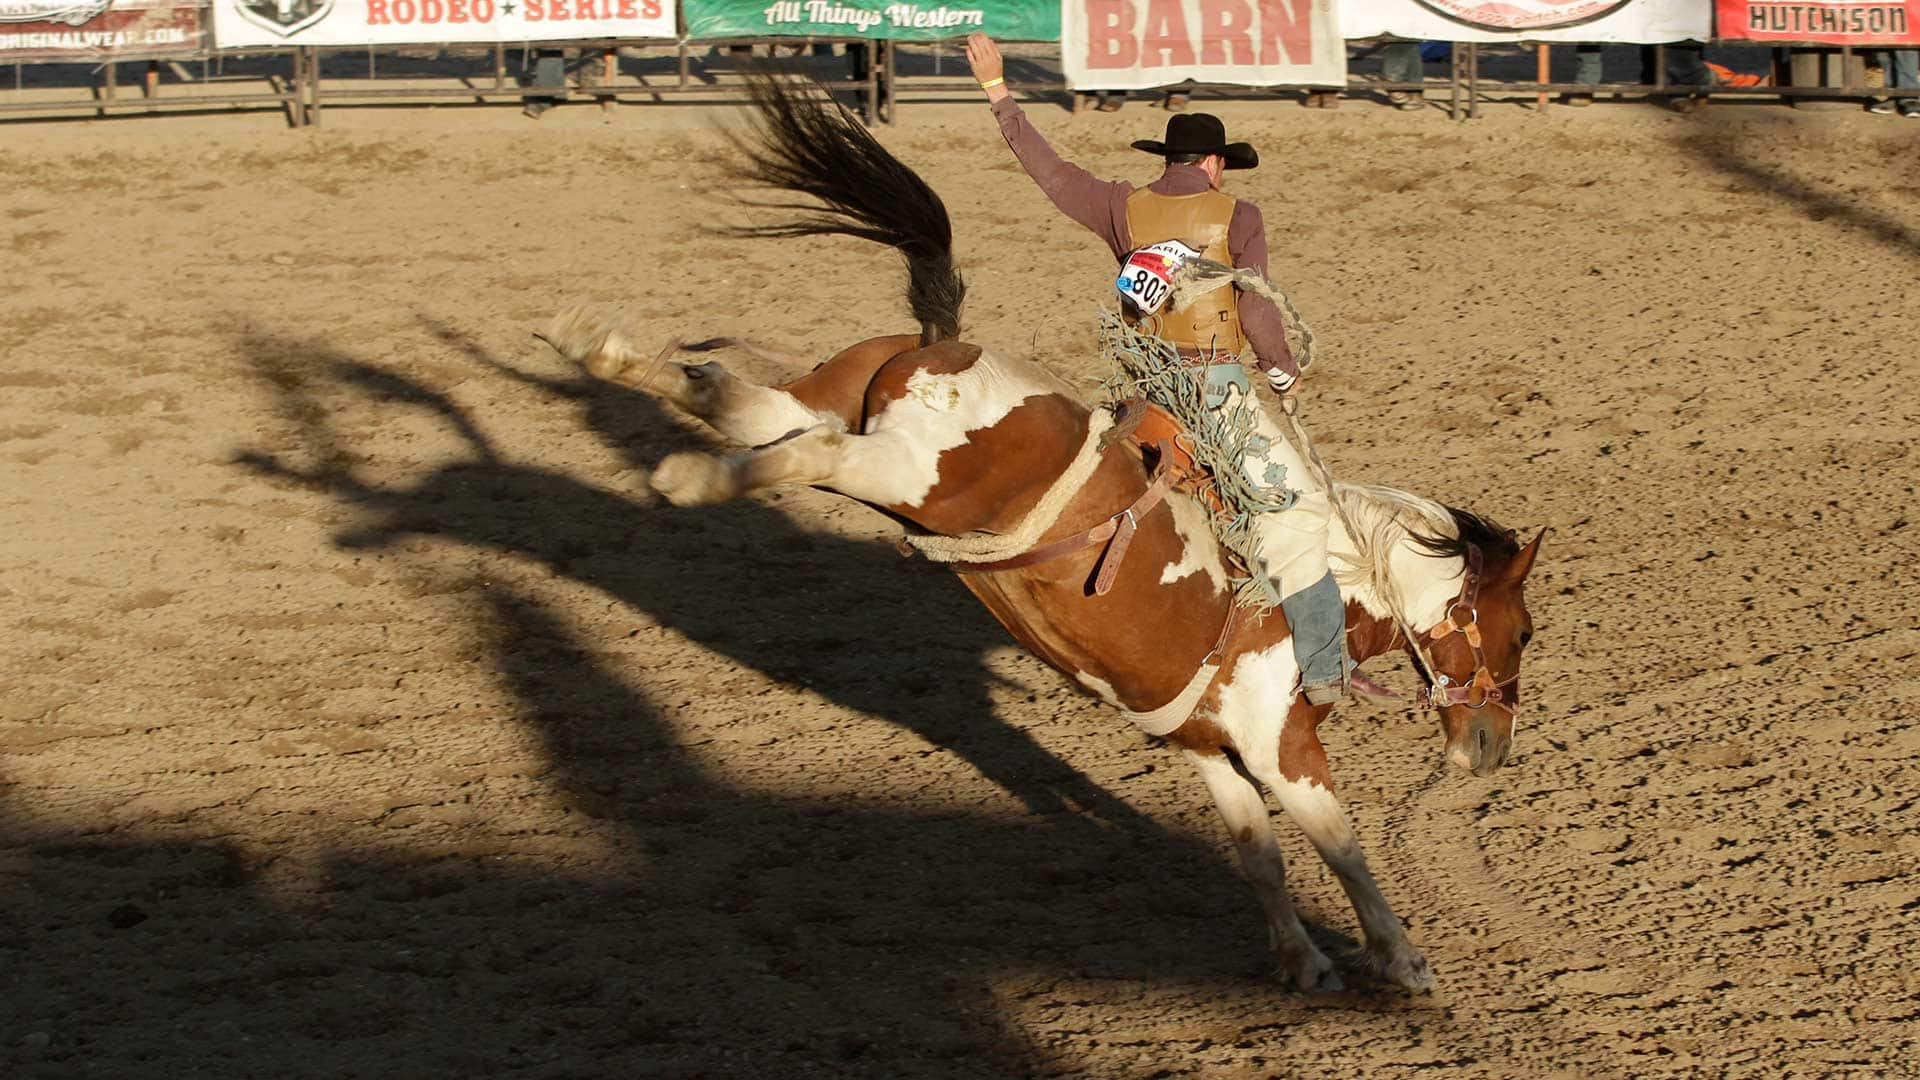 Cowboy Up Top Youth Rodeo Events Saddle Bronc Barrel Racing Goat